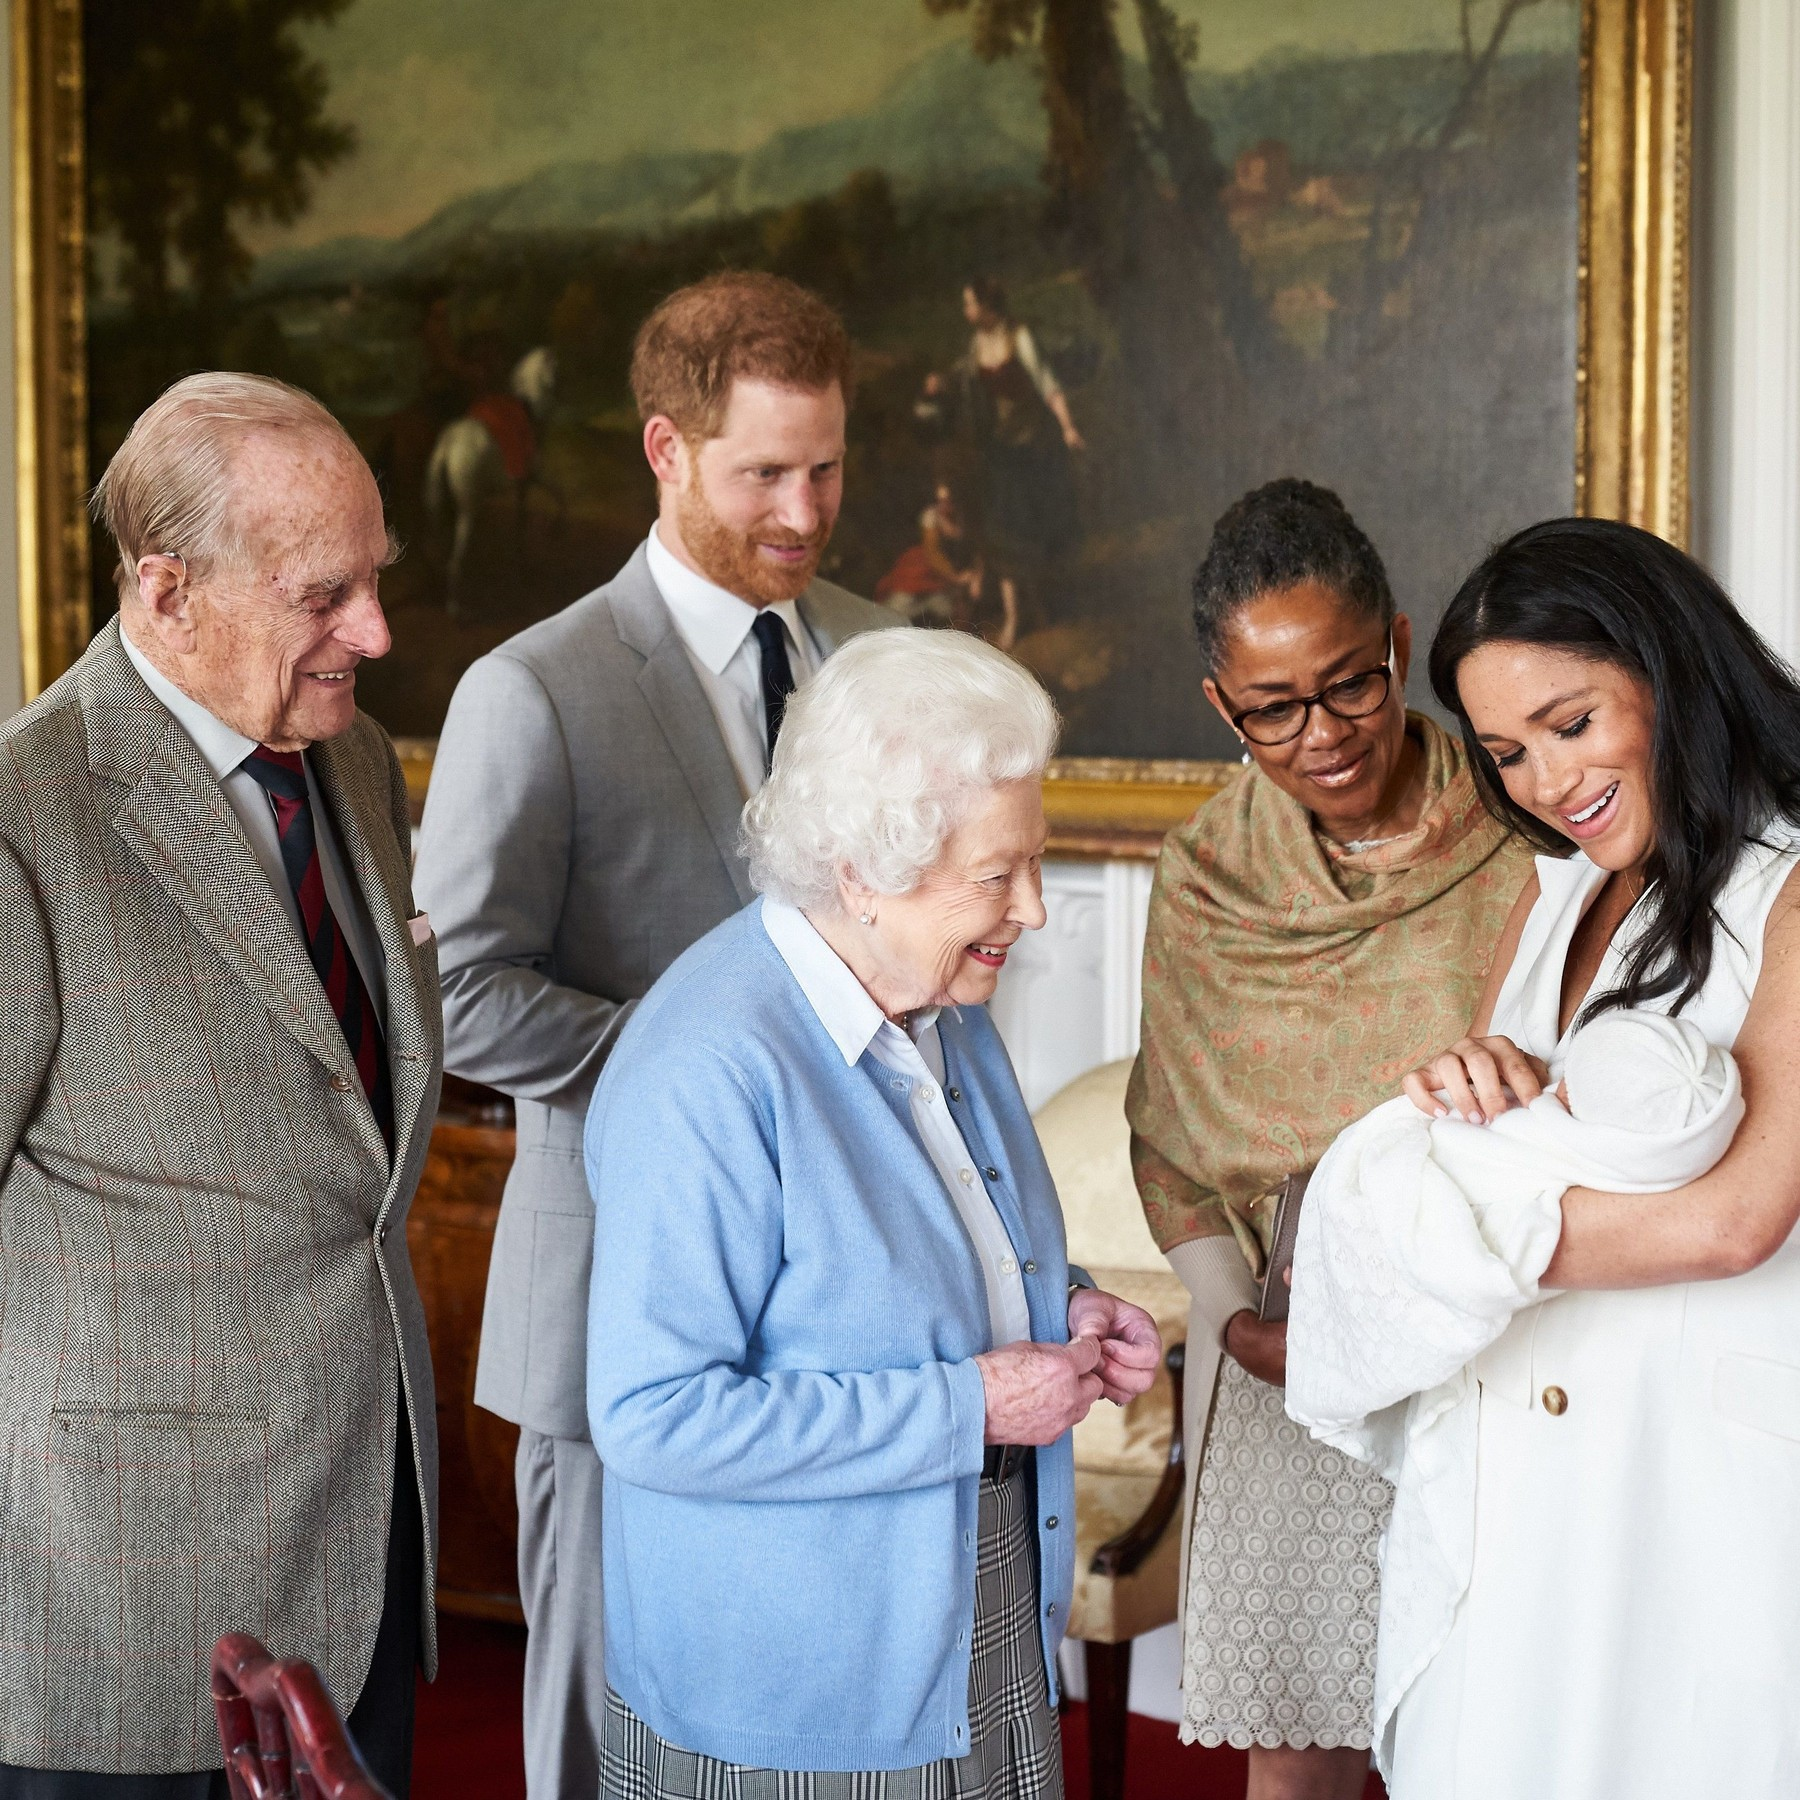 Prince Harry and Meghan Duchess of Sussex are joined by her mother, Doria Ragland, as they show their new son, born Monday and named as Archie Harrison Mountbatten-Windsor, to Queen Elizabeth II and Prince Philip at Windsor Castle. Queen Elizabeth II meets new grandson Archie Harrison Mountbatten-Windsor, Windsor Castle, UK - 08 May 2019 This photograph is provided to you strictly on condition that you will make no charge for the supply, release or publication of it and that these conditions and restrictions will apply (and that you will pass these on) to any organisation to whom you supply it. There shall be no commercial use whatsoever of the photographs (including by way of example only) any use in merchandising, advertising or any other non-news editorial use. The photograph must not be digitally enhanced, manipulated or modified in any manner or form and must include all of the individuals in the photograph when published. All other requests for use should be directed to the Buckingham Palace Press Office in writing. The Duke and Duchess of Sussex are joined by her mother, Doria Ragland, as they show their new son, born Monday and named as Archie Harrison Mountbatten-Windsor, to the Queen Elizabeth II and the Duke of Edinburgh at Windsor Castle.,Image: 431837840, License: Rights-managed, Restrictions: NOT FOR USE AFTER 7th JUNE 2019. Free for use, News Editorial Use Only. No Commercial Use. No Merchandising, Advertising, Souvenirs, Memorabilia Or Colourably Similar., Model Release: no, Credit line: Chris Allerton/SussexRoyal / Shutterstock Editorial / Profimedia